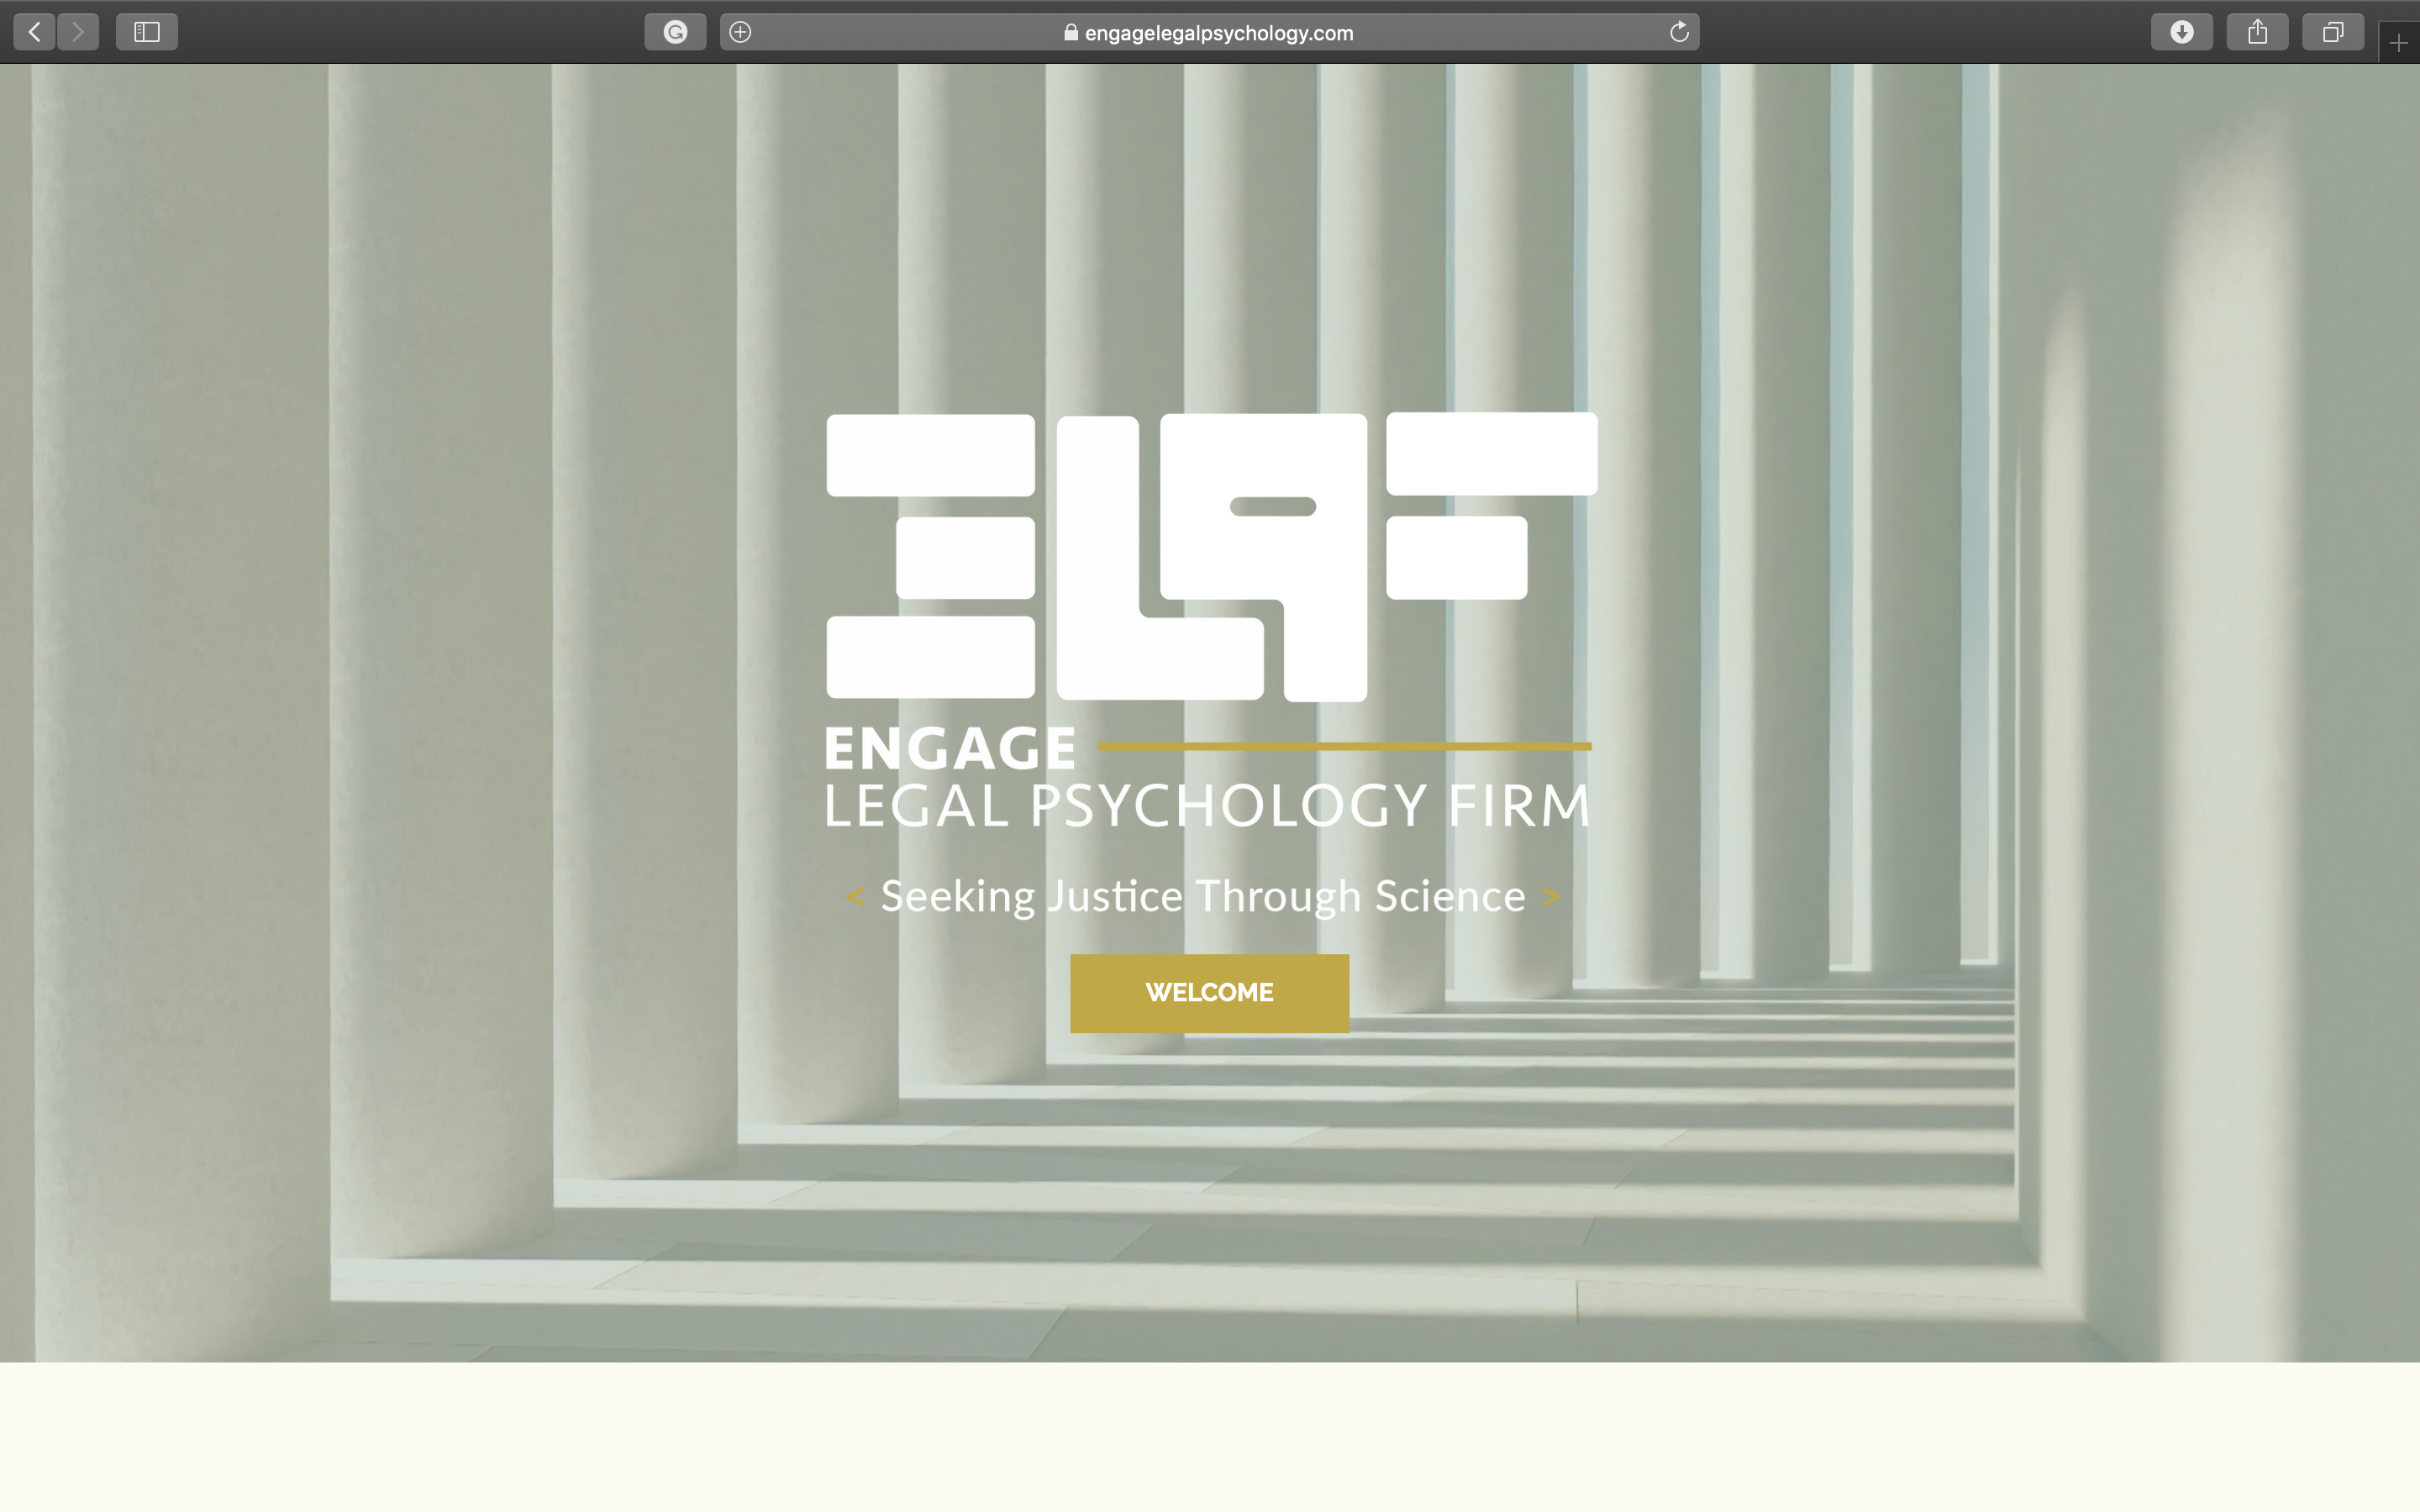 Website Design (Engage Legal Psychology